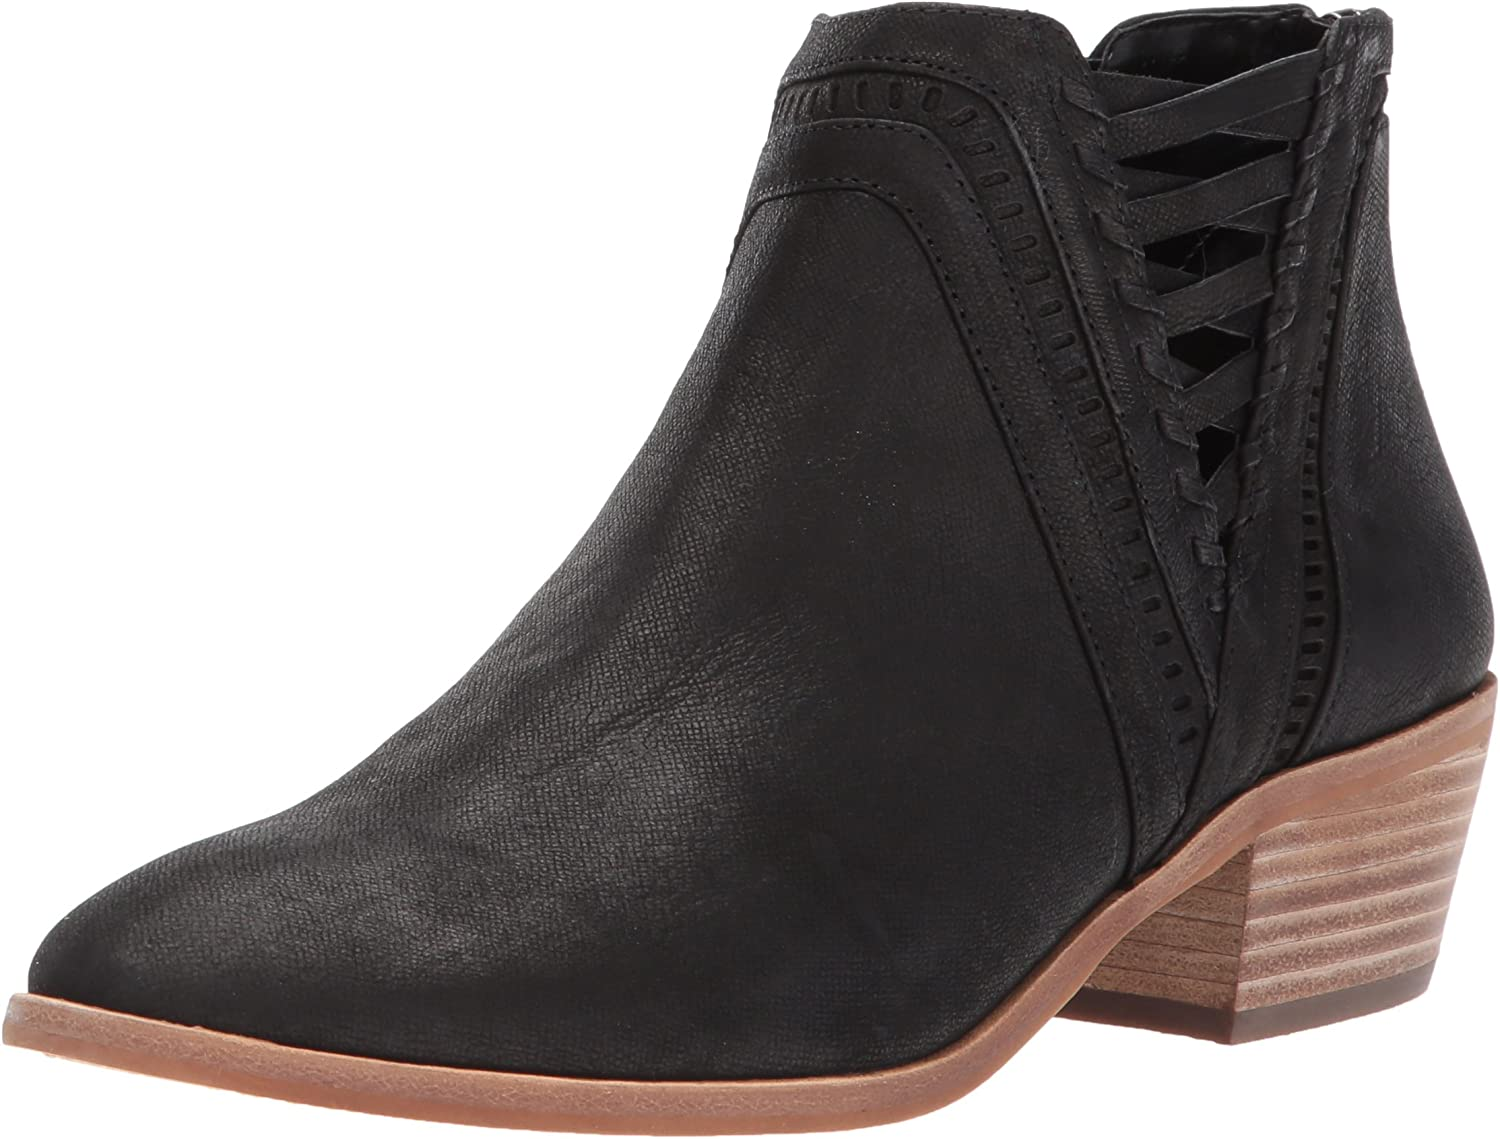 Vince Camuto Womens Pimmy Ankle Boot